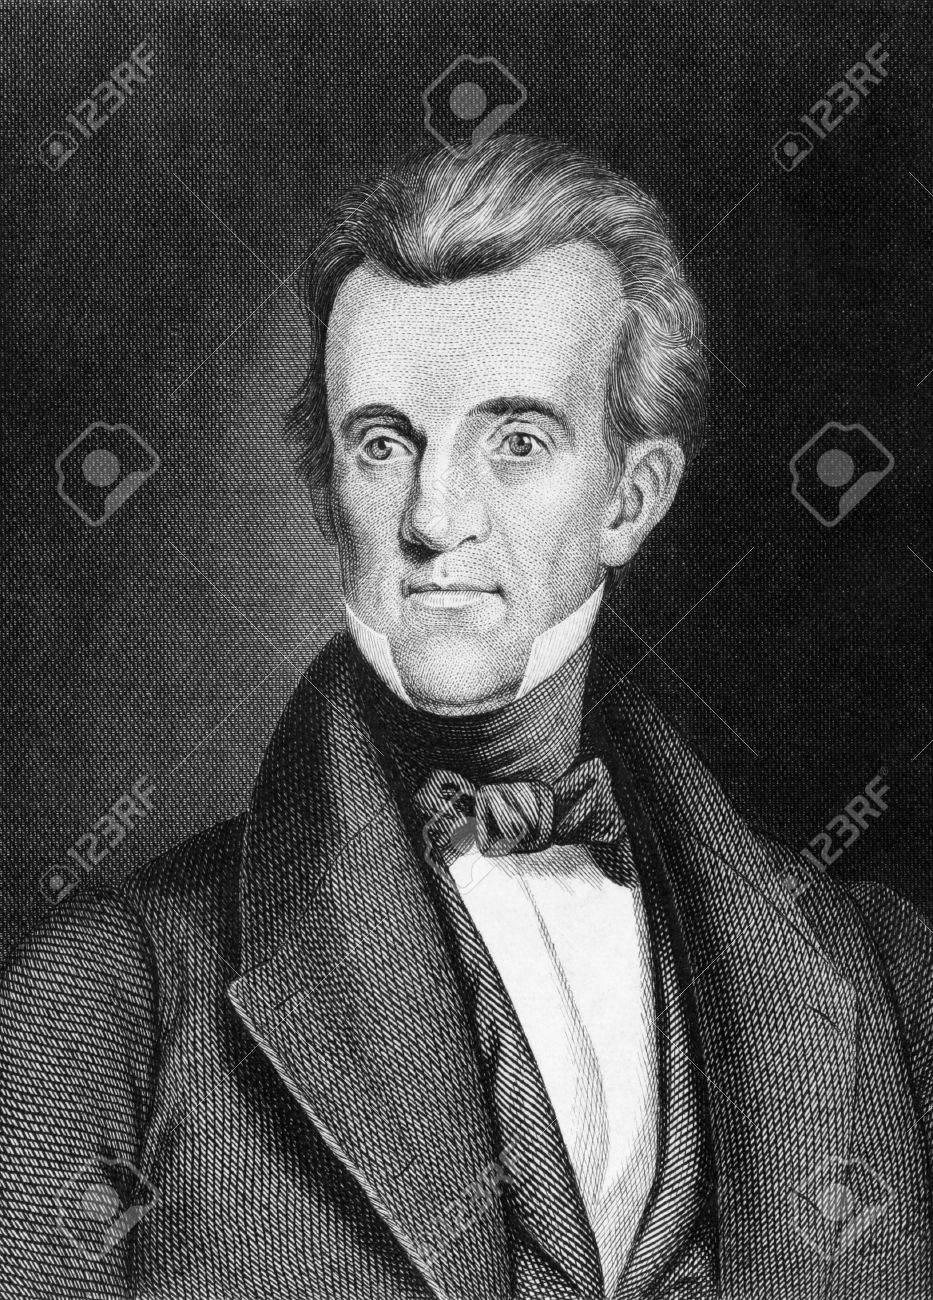 James Knox Polk (1795-1849) on engraving from 1859.  11th President of the United States during 1845–1849. Engraved by unknown artist and published in Meyers Konversations-Lexikon, Germany,1859. Stock Photo - 15112557